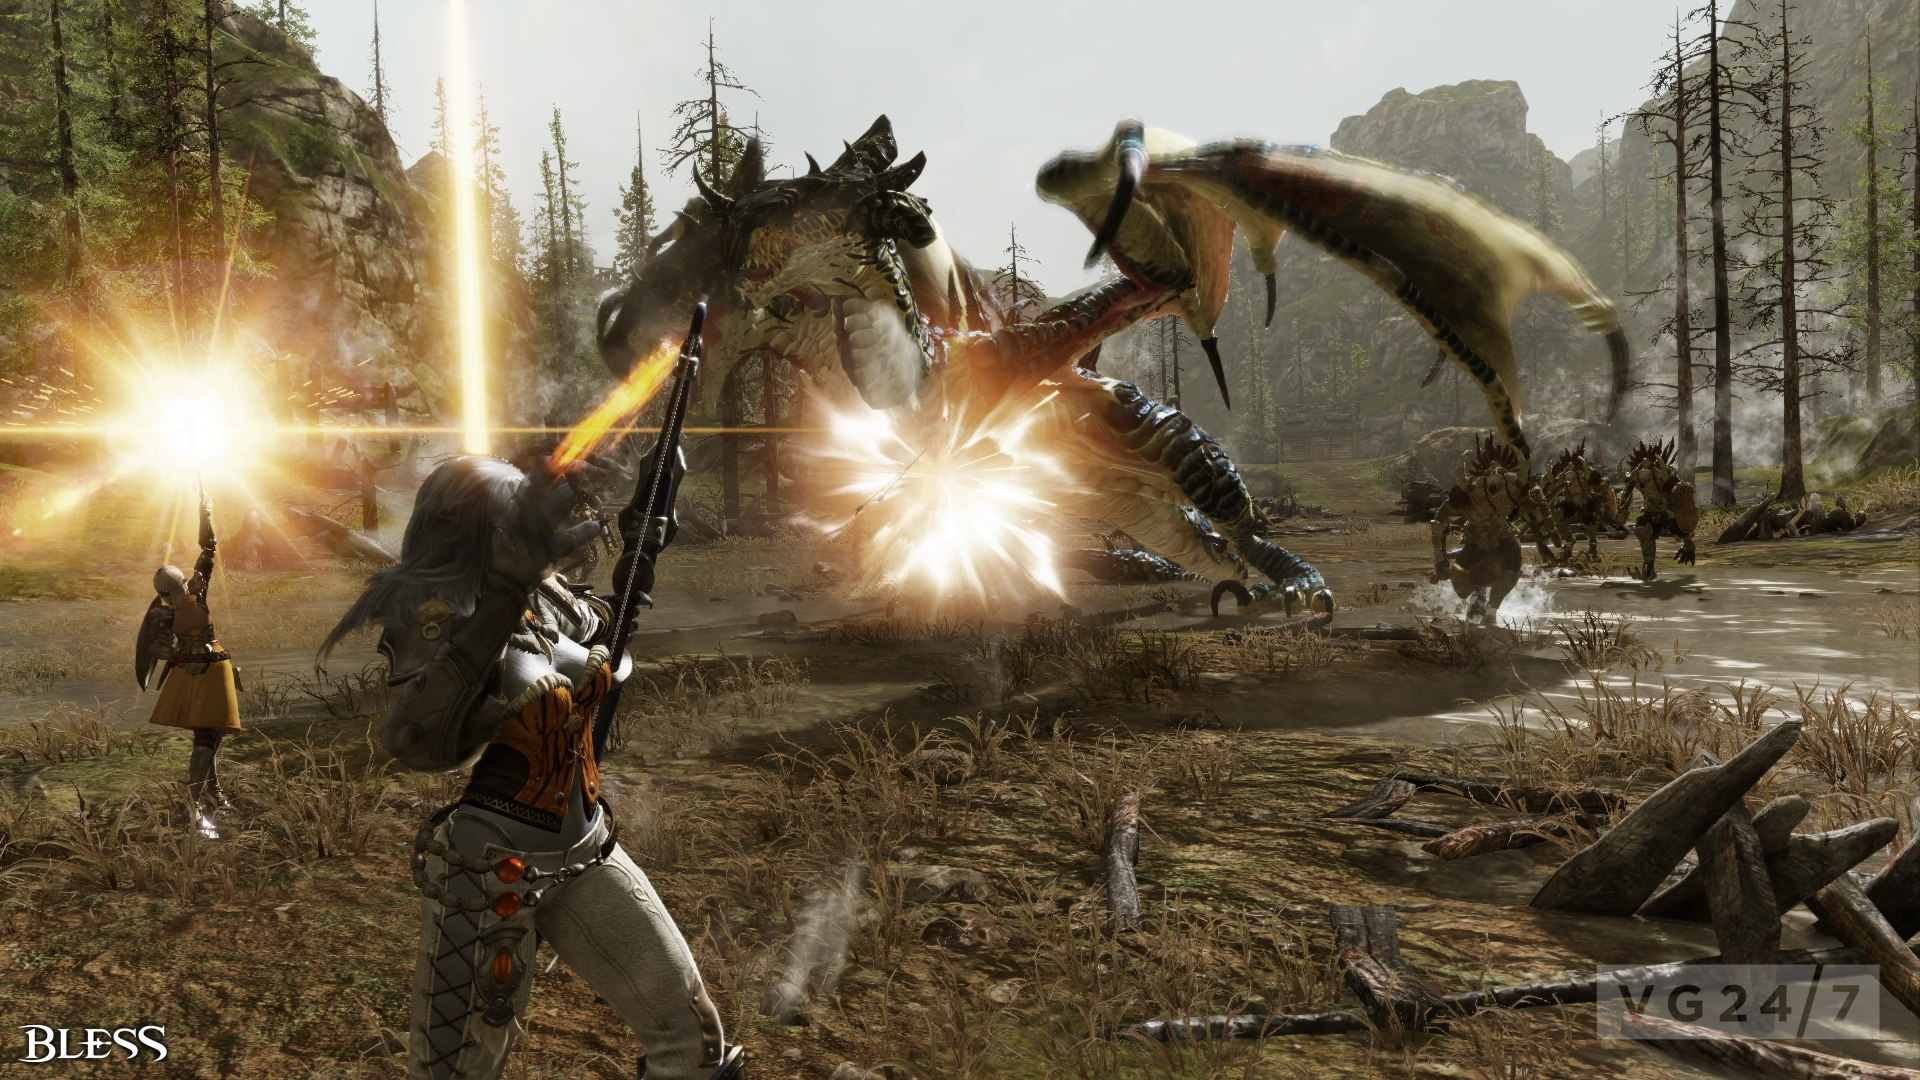 Bless Online screenshots show lovely locales, battles, creatures ...